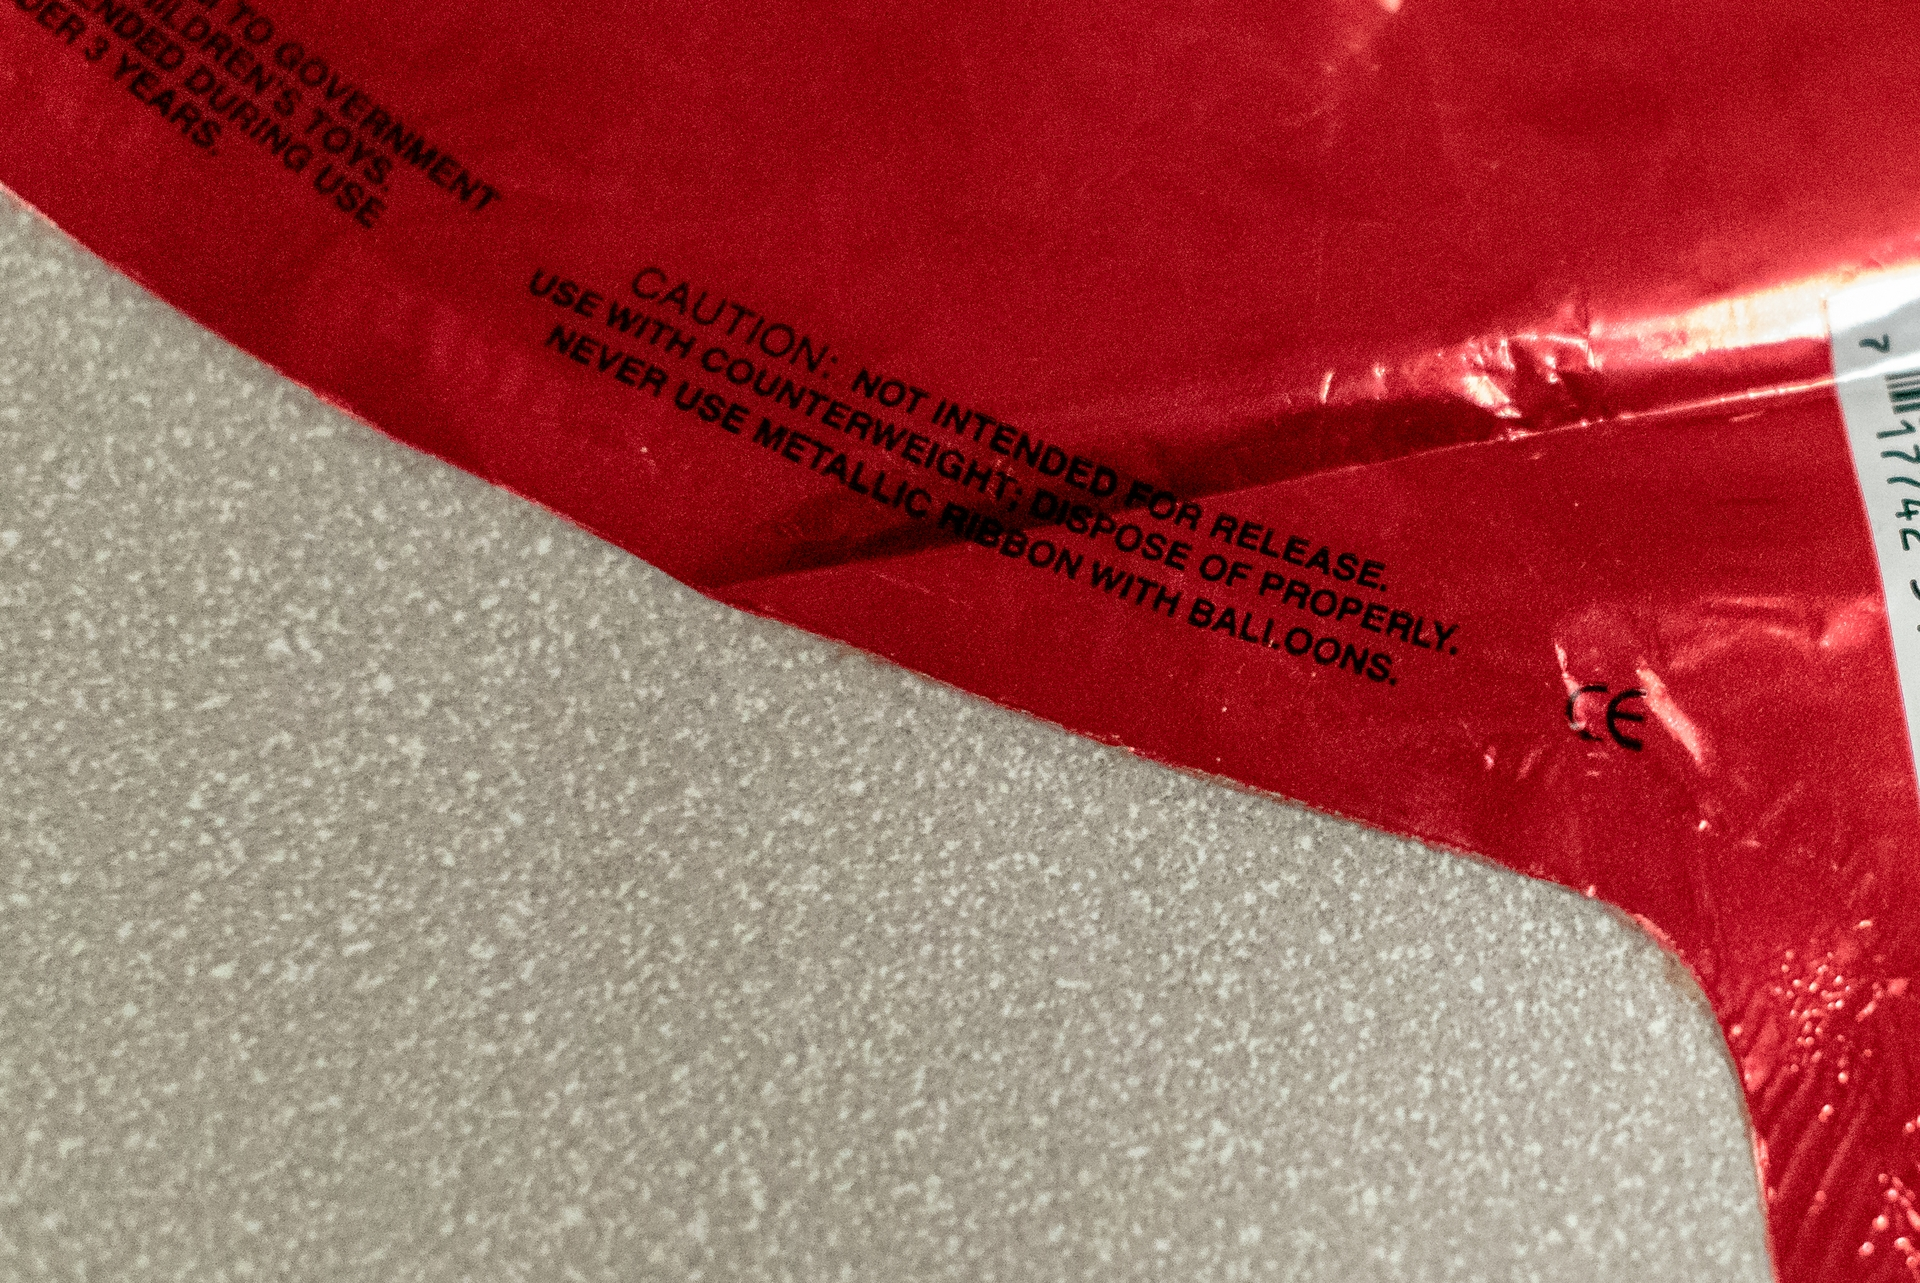 "The new law requires warnings on metallic balloons made by in-state manufacturers like, ""CAUTION: NOT INTENDED FOR RELEASE. USE WITH COUNTERWEIGHT; DISPOSE OF PROPERLY. NEVER USE METALLIC RIBBON WITH BALLOONS."""